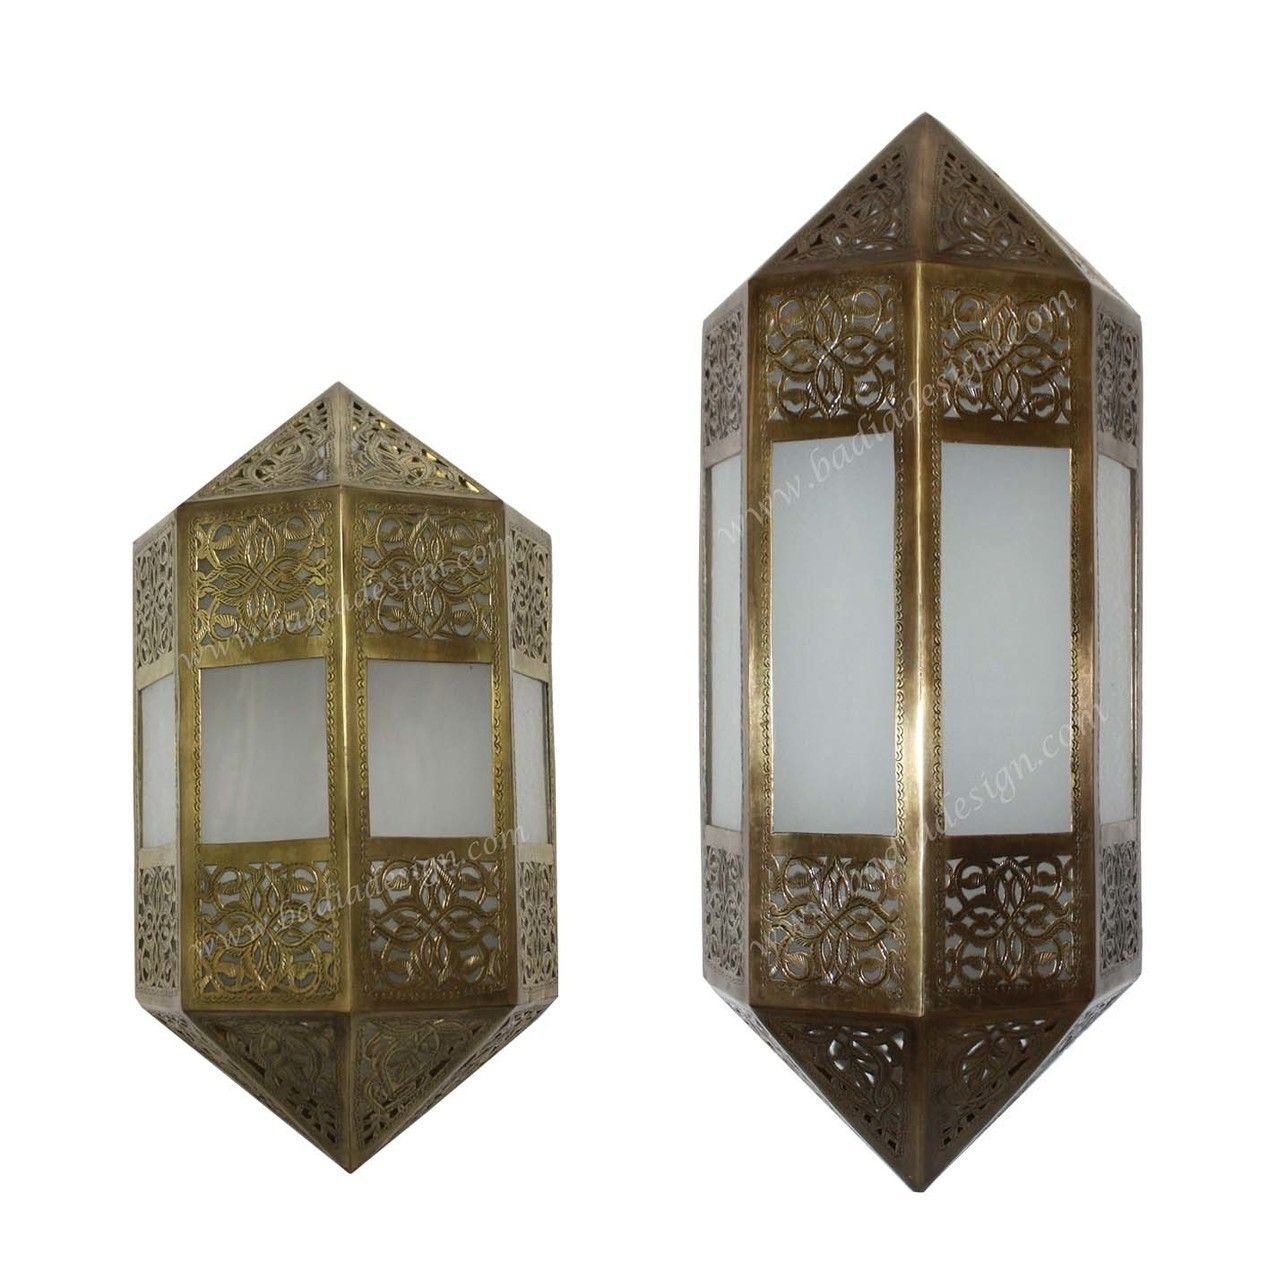 Brass Wall Sconce With White Glass Wl191 Brass Wall Sconce Crystal Wall Sconces Wall Sconces